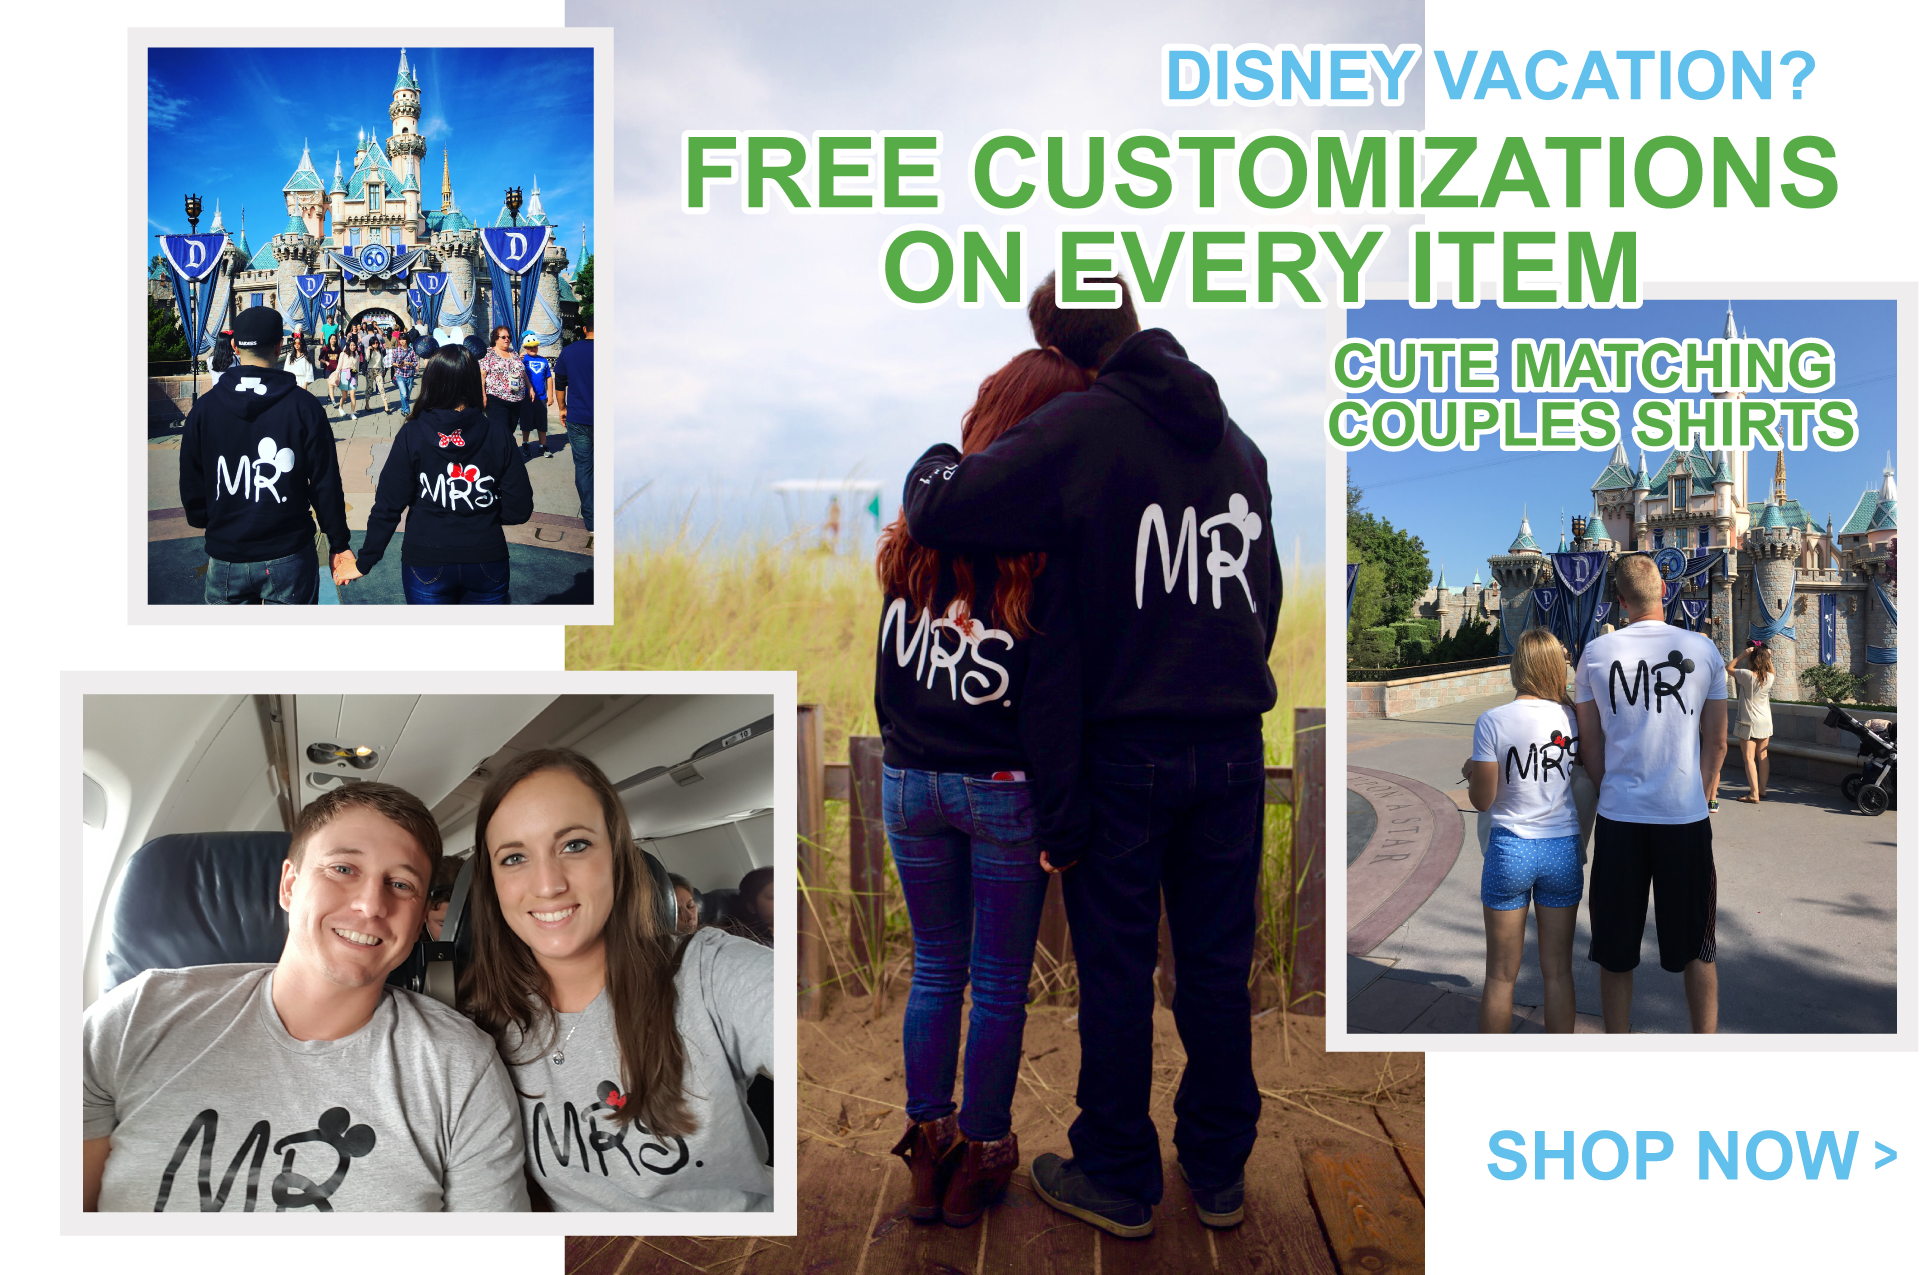 Disney Vacation Matching Couples Shirts with custom names and dates